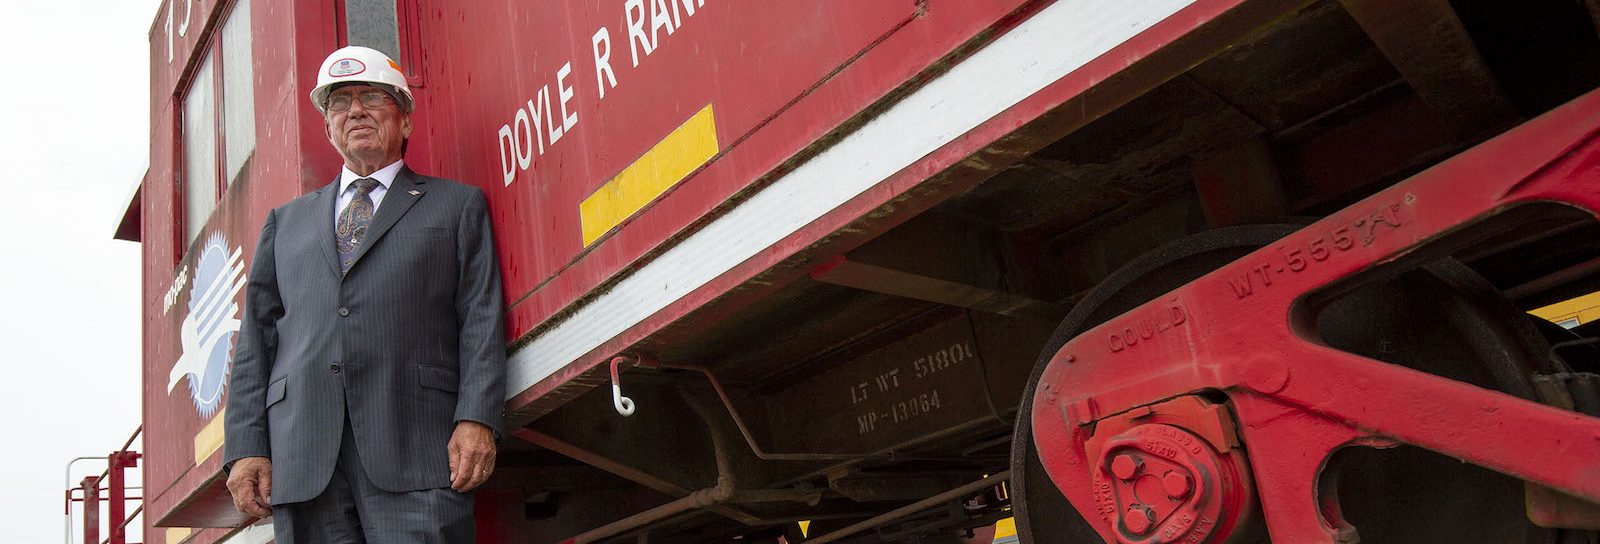 Photo by BENJAMIN KRAIN —05/4/18-- Doyle Rankins will be graduating UA Little Rock in Spring 2018 after dropping out of college 50 years ago. Rankins took a job at Union Pacific Railroad in 1969 and recently retired as one of the company's top managers and is the only person to get his name on a train car, a 1960's patio caboose.